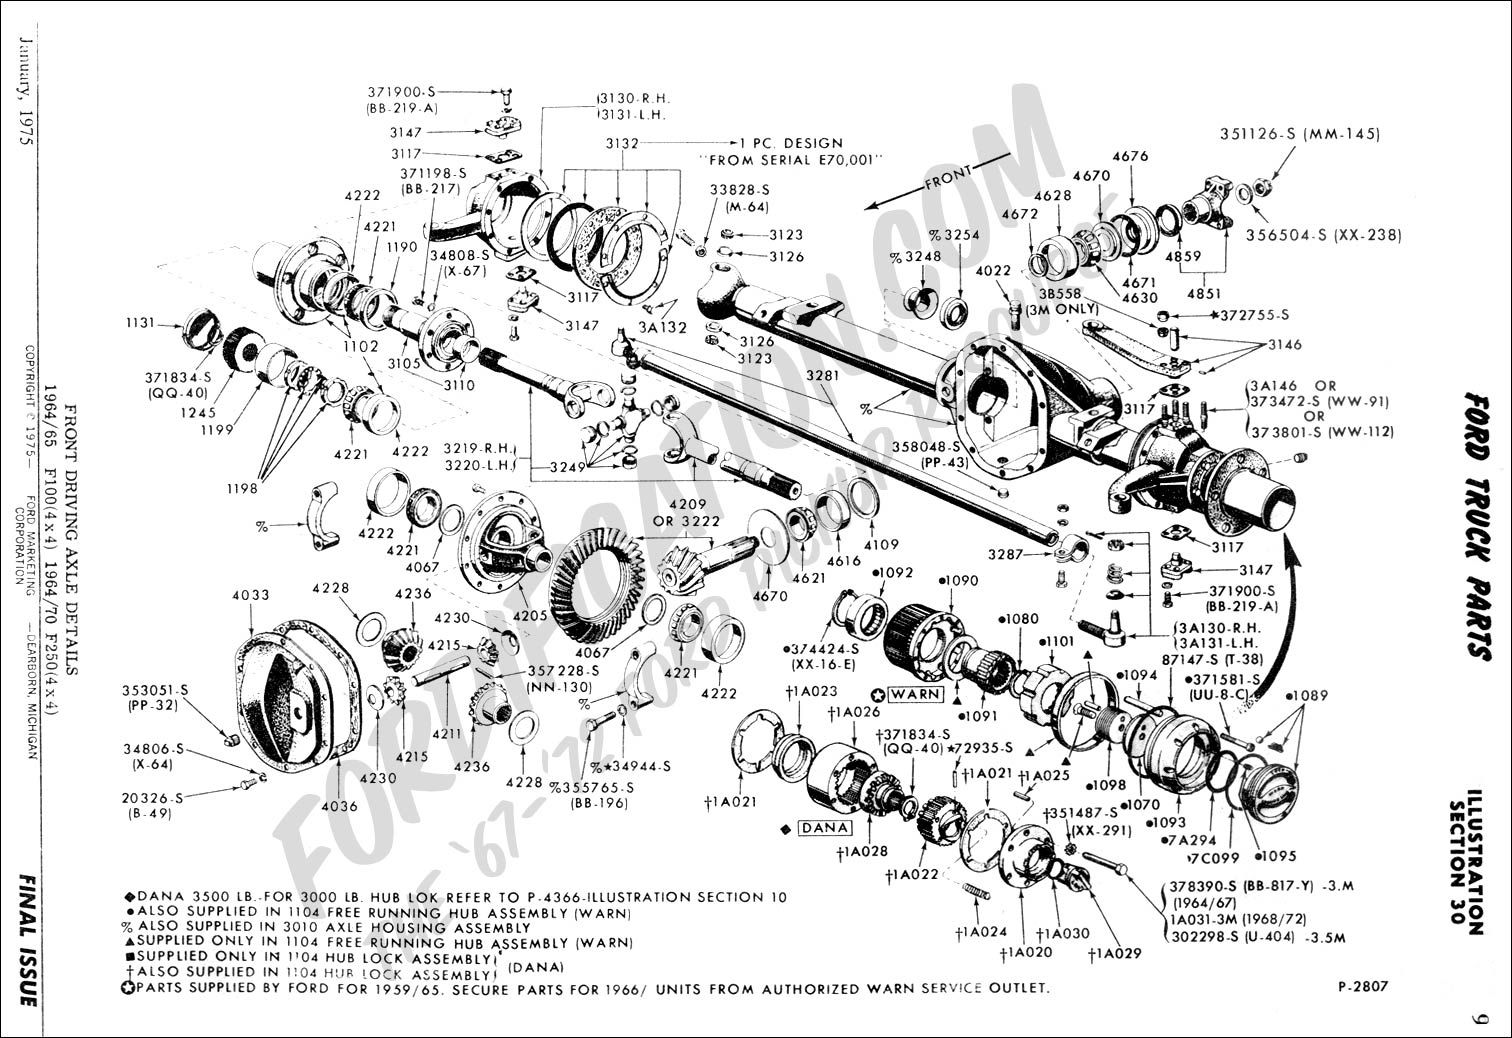 2007 ford ranger stereo wiring diagram for a 5 pin relay f 250 front end parts | farm power pinterest and